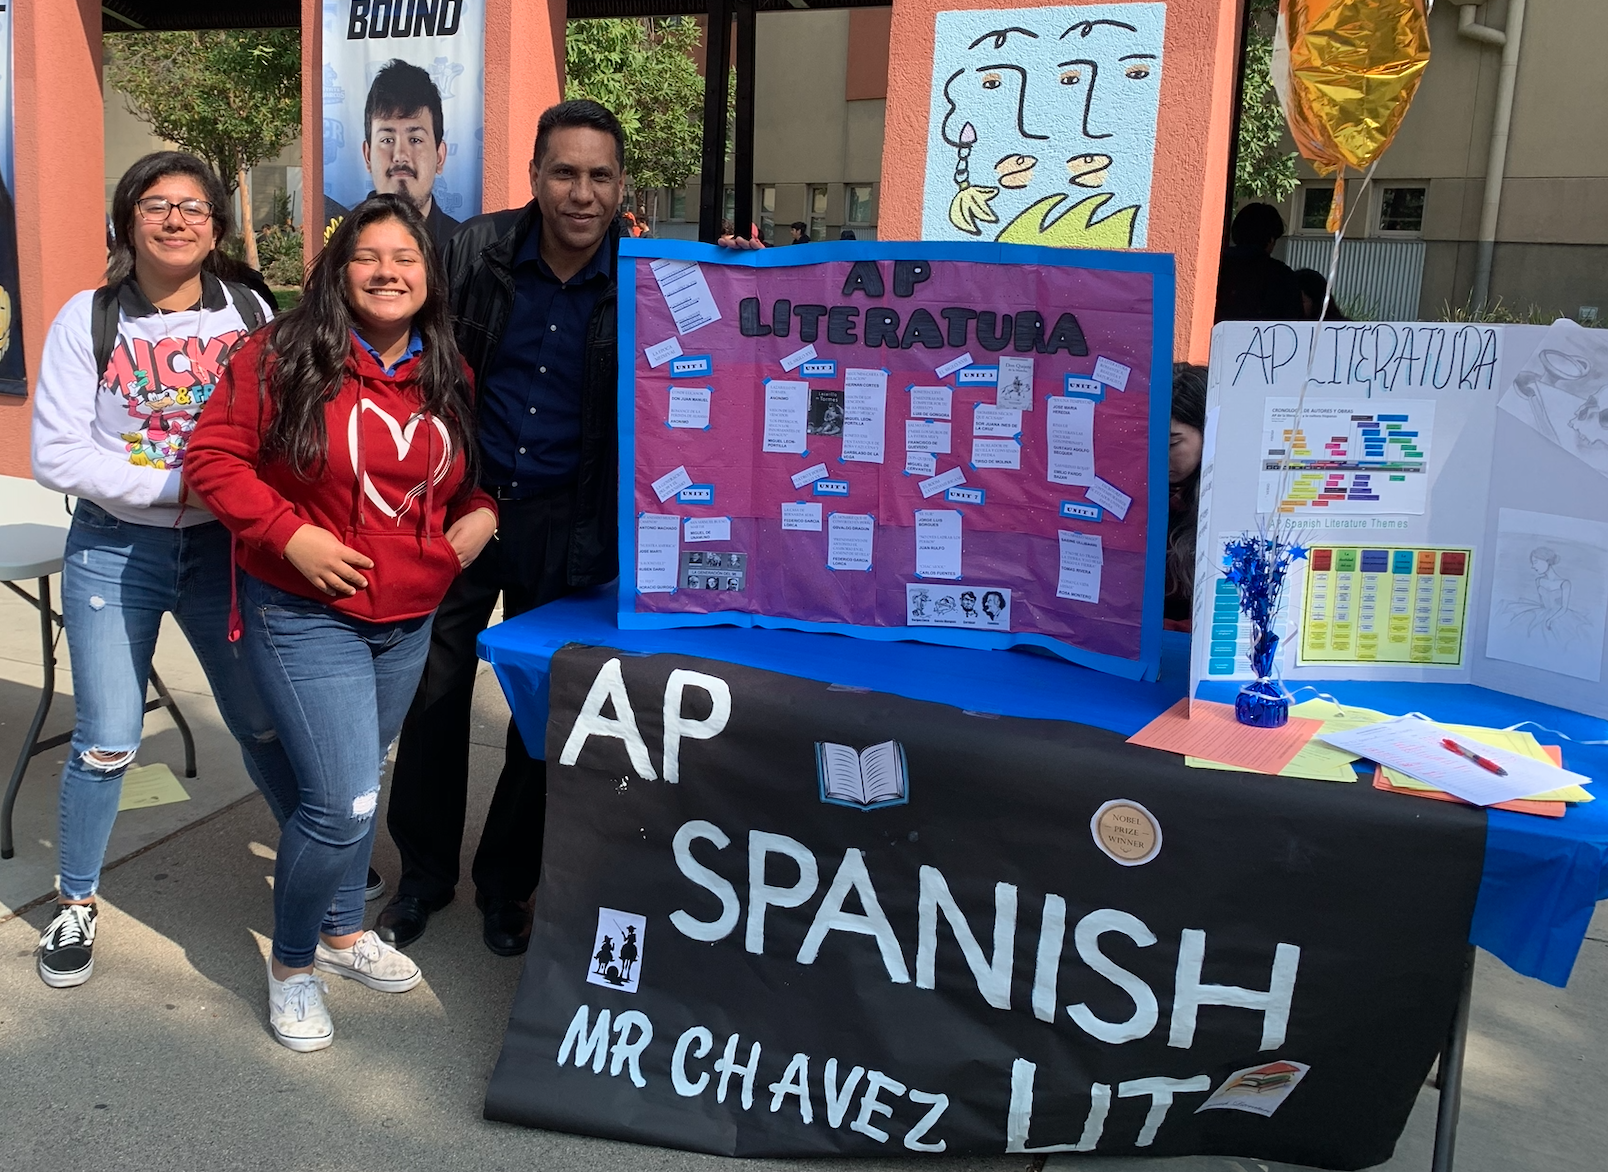 Mr. Chavez - AP Spanish Literature